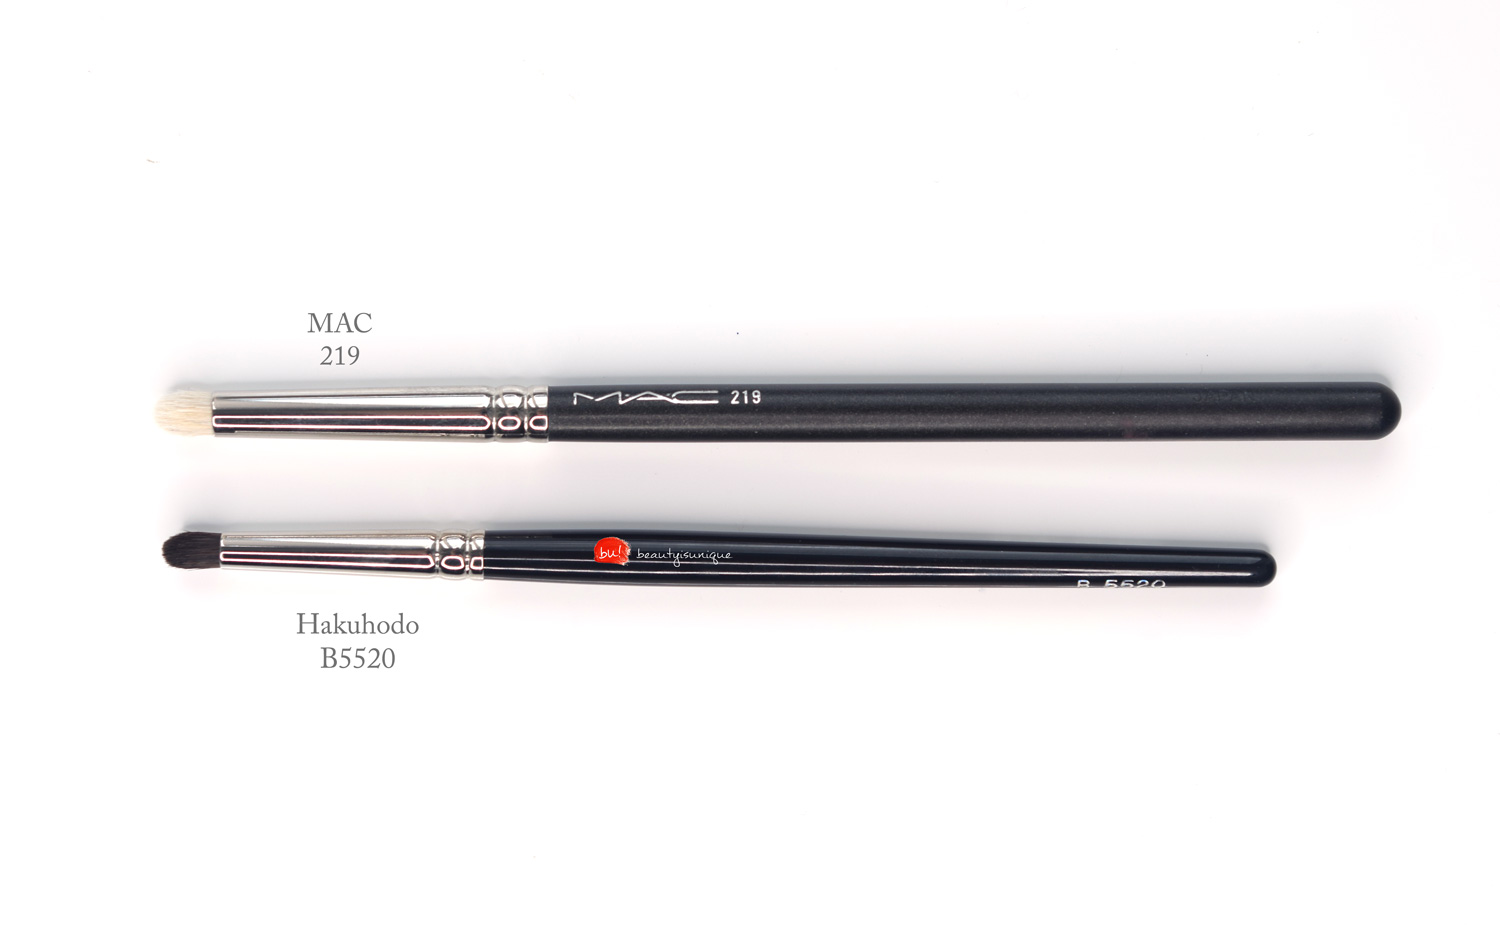 Hakuhodo-B5520-vs-mac-219